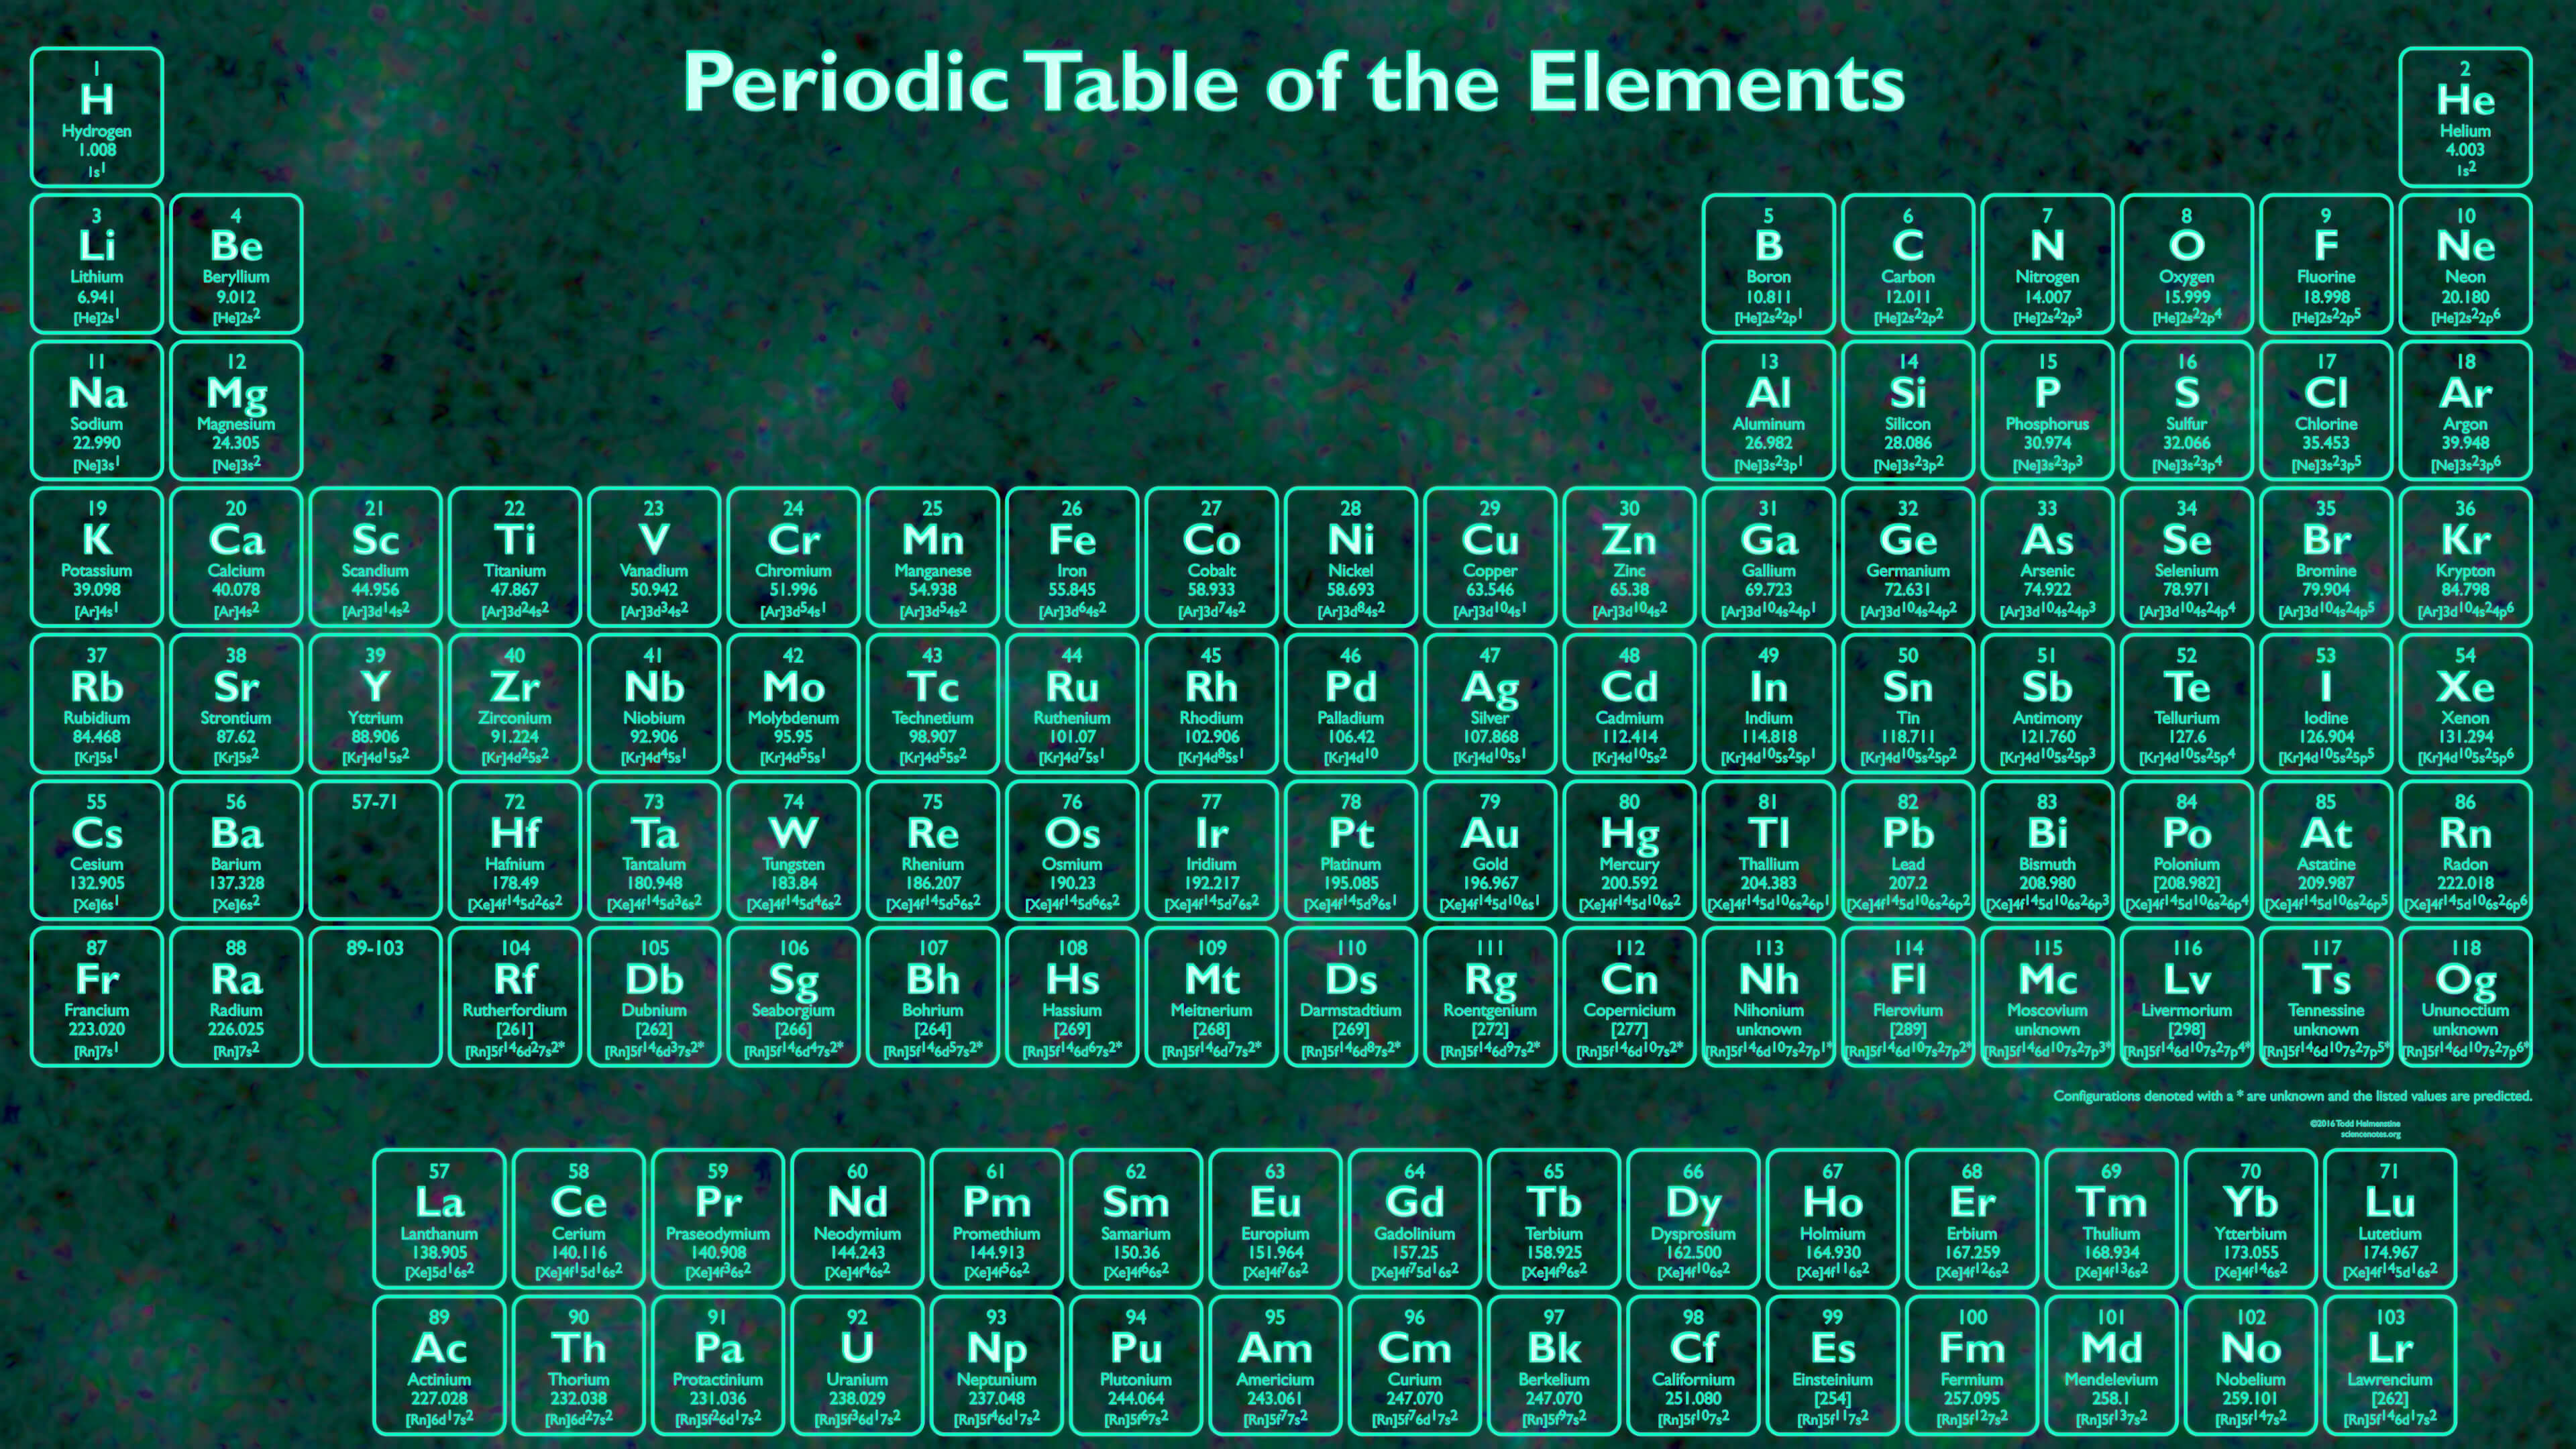 Glow in the dark 4k periodic table wallpaper with 118 elements glow in the dark 4k periodic table with 118 elements urtaz Images